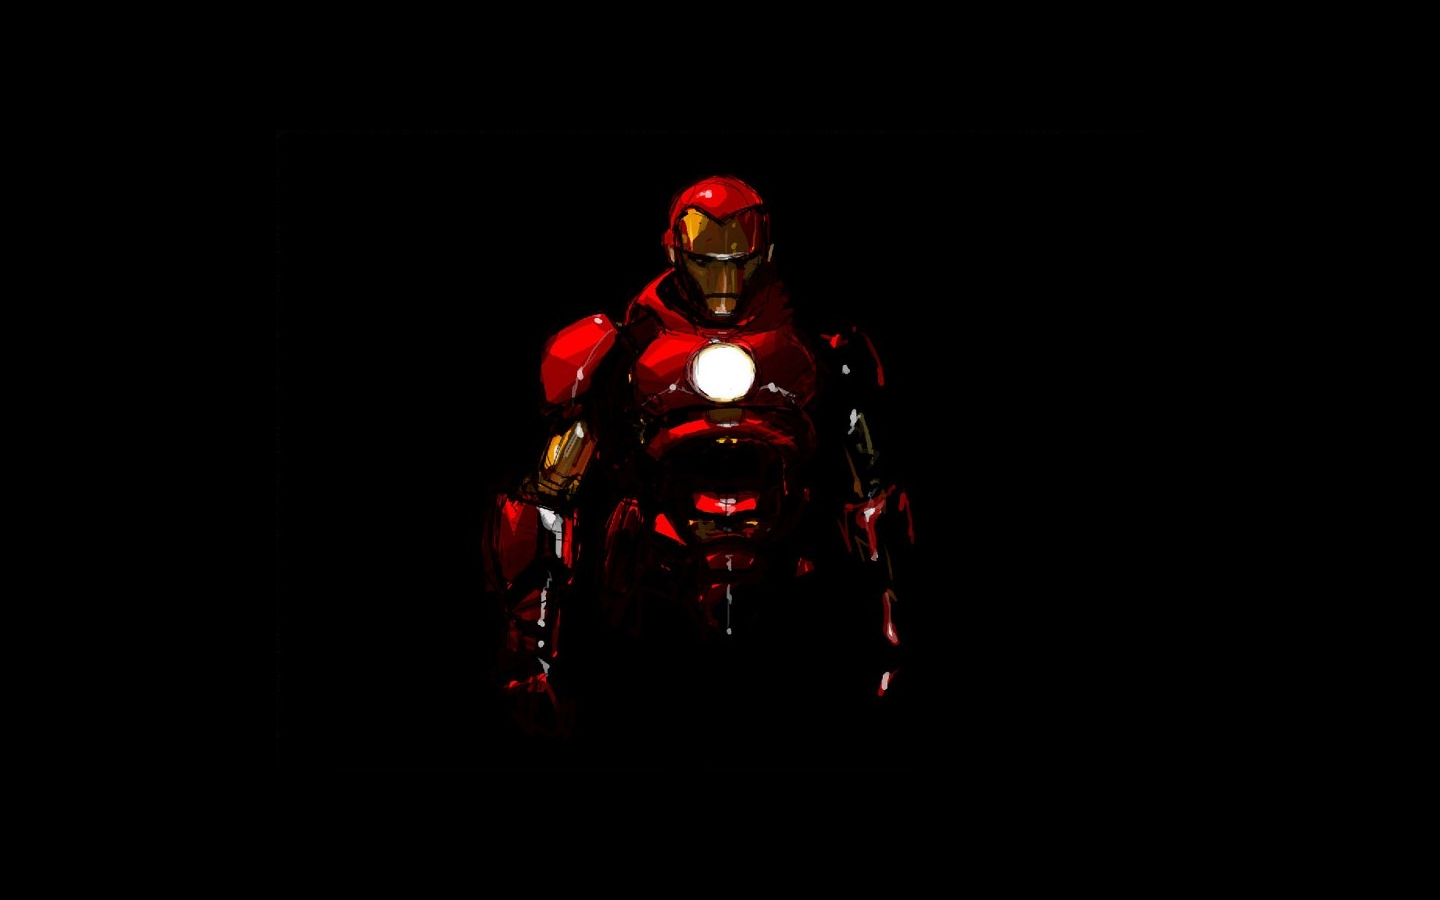 EVERY THING HD WALLPAPERS Iron Man HD Wallpapers 2013 1440x900